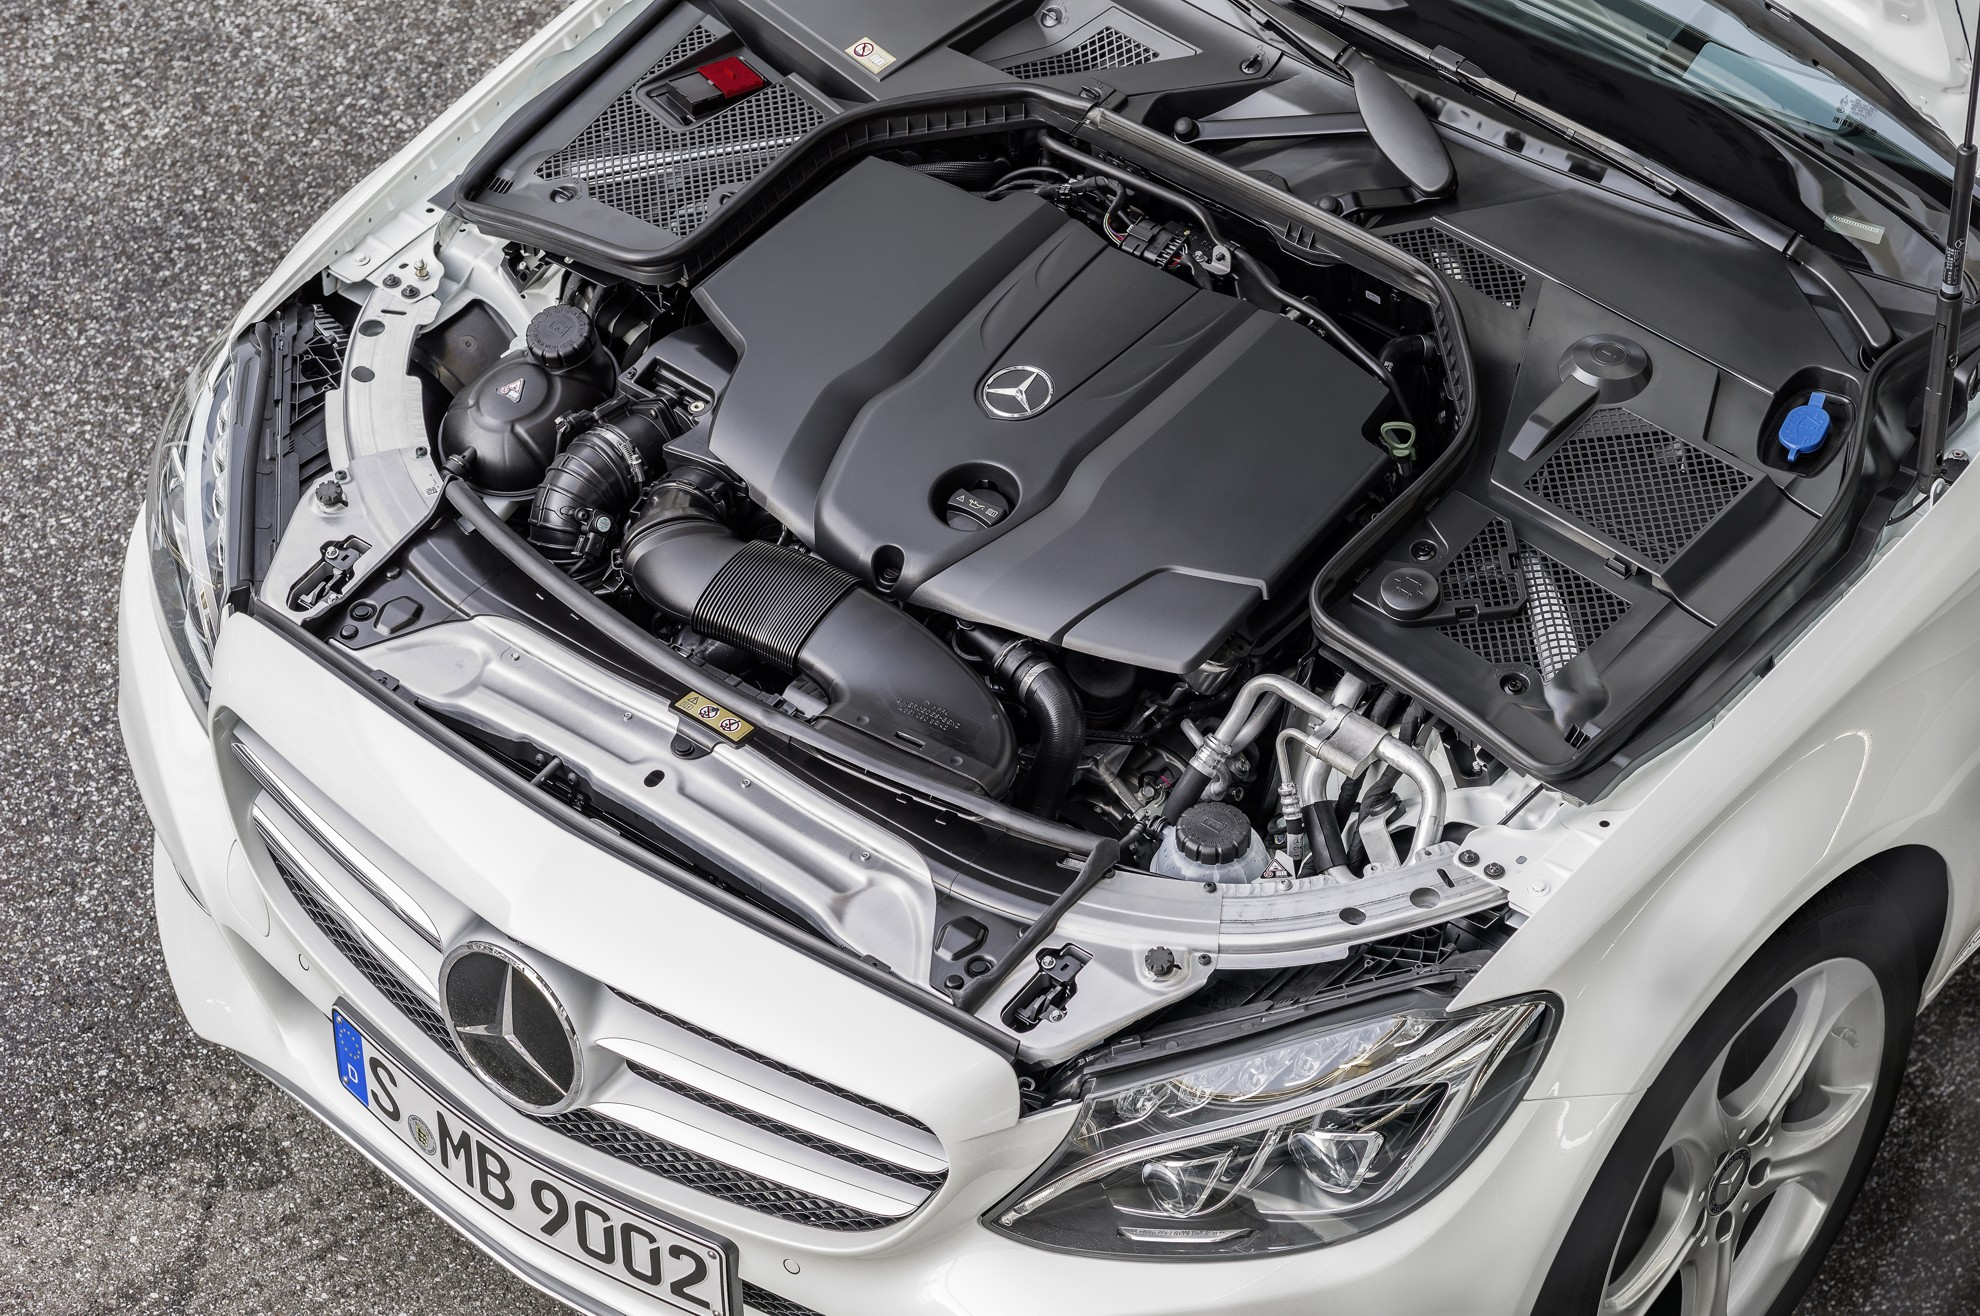 New_Mercedes-Benz_C-Class-Engine